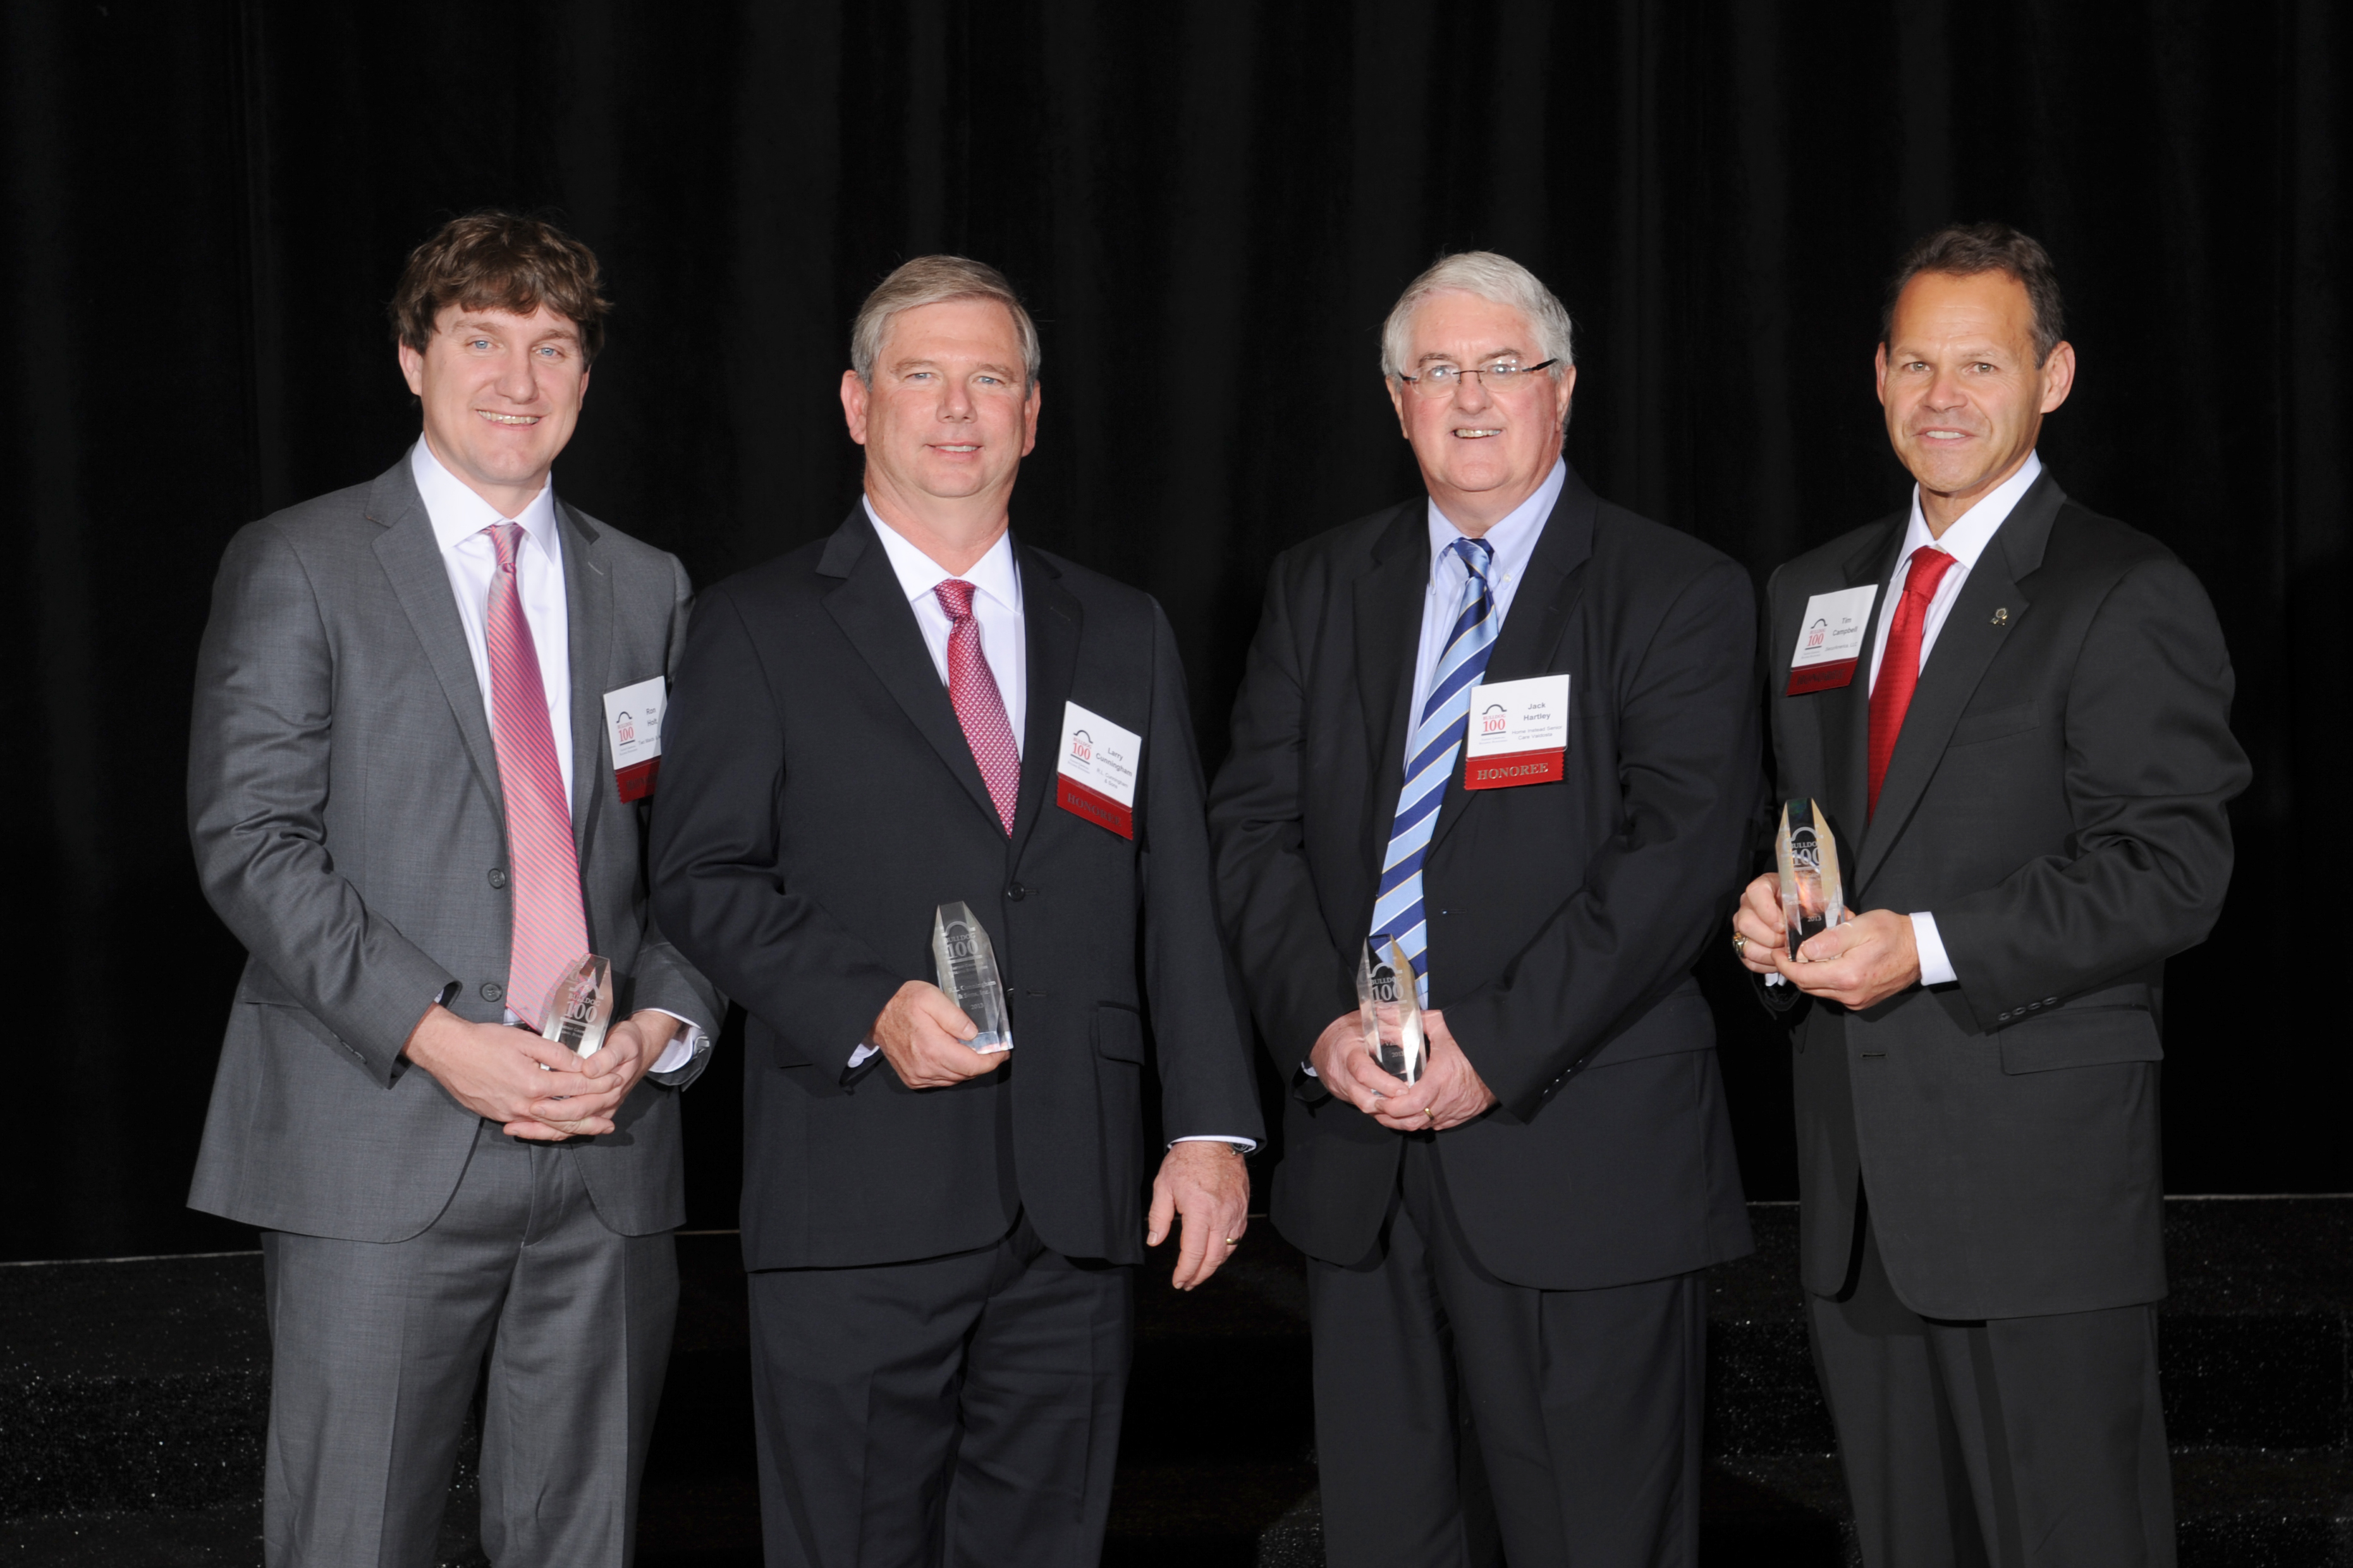 Nine University of Georgia College of Agricultural and Environmental Sciences graduates were honored on this year's Bulldog 100 list of the fastest growing businesses owned or operated by UGA alumni. Pictured at the Bulldog 100 event are four of the honorees - Ron Holt, Larry Cunningham, Jack Hartley and Timothy Campbell.